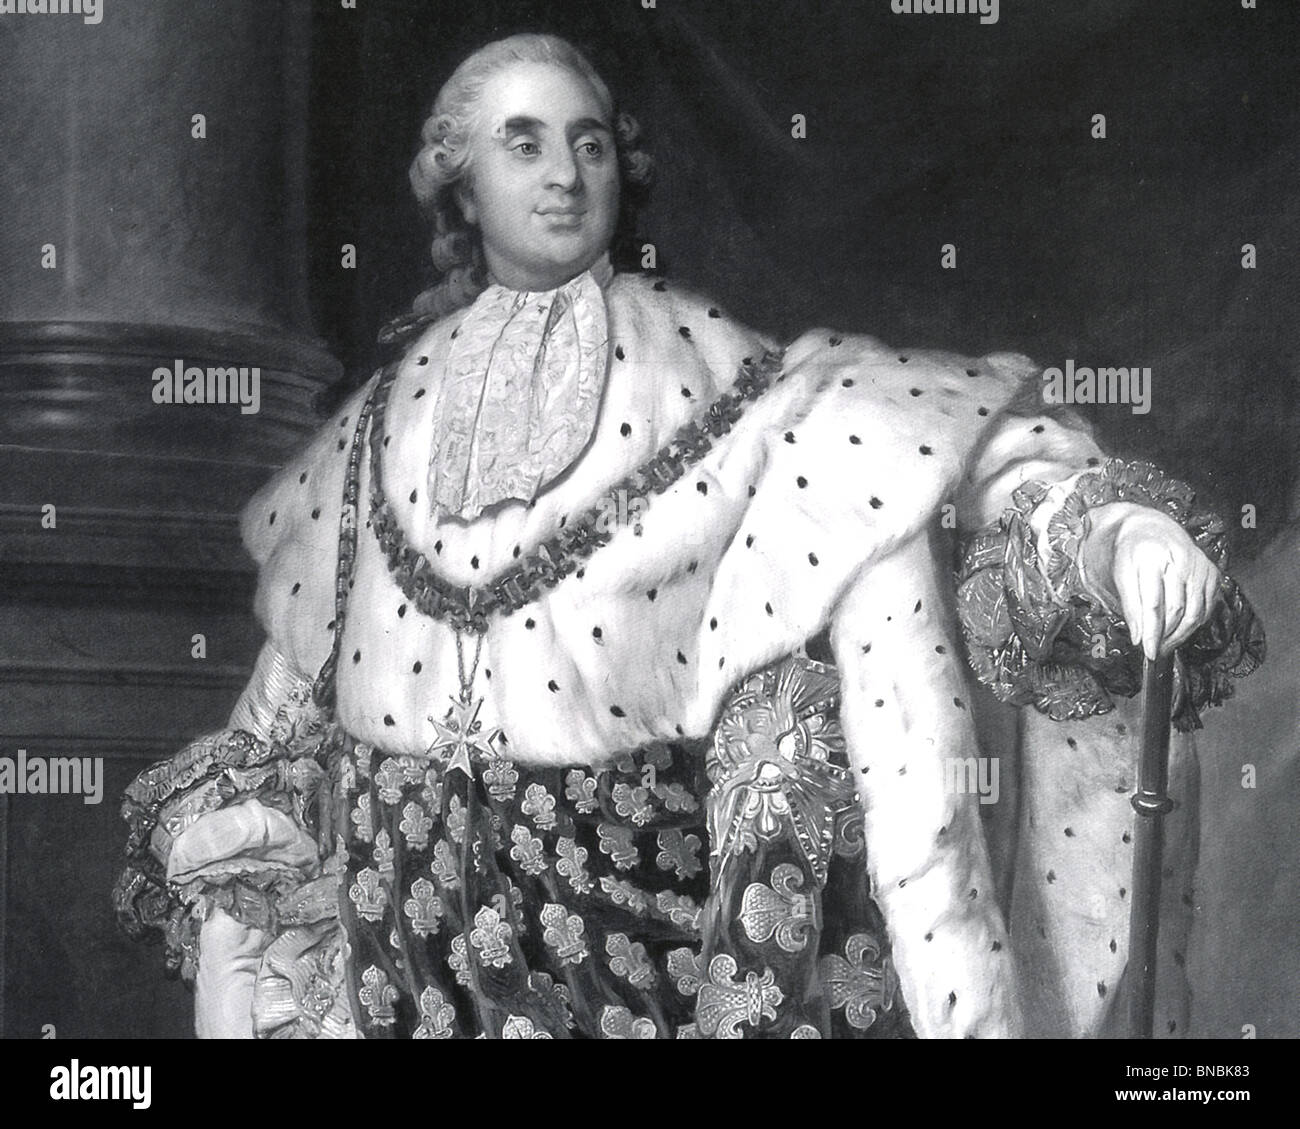 KING LOUIS XVI of France in his coronation robes - Stock Image